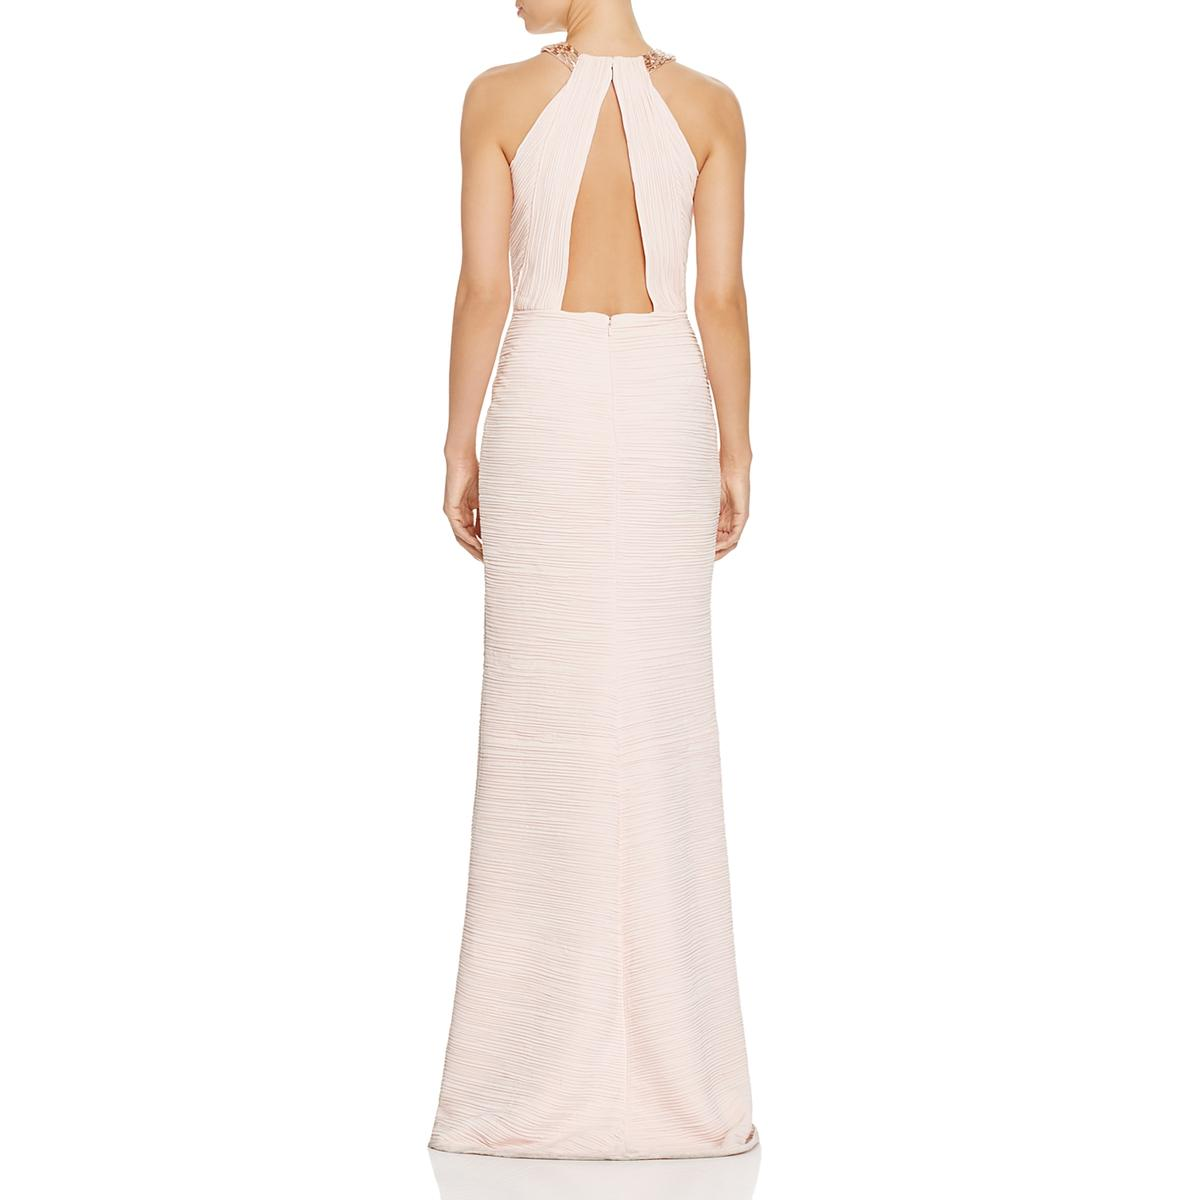 8d77213b26c3 Details about Carmen Marc Valvo Pink Women's Evening Dress Special Occasion  Gown 10 BFHO 9279